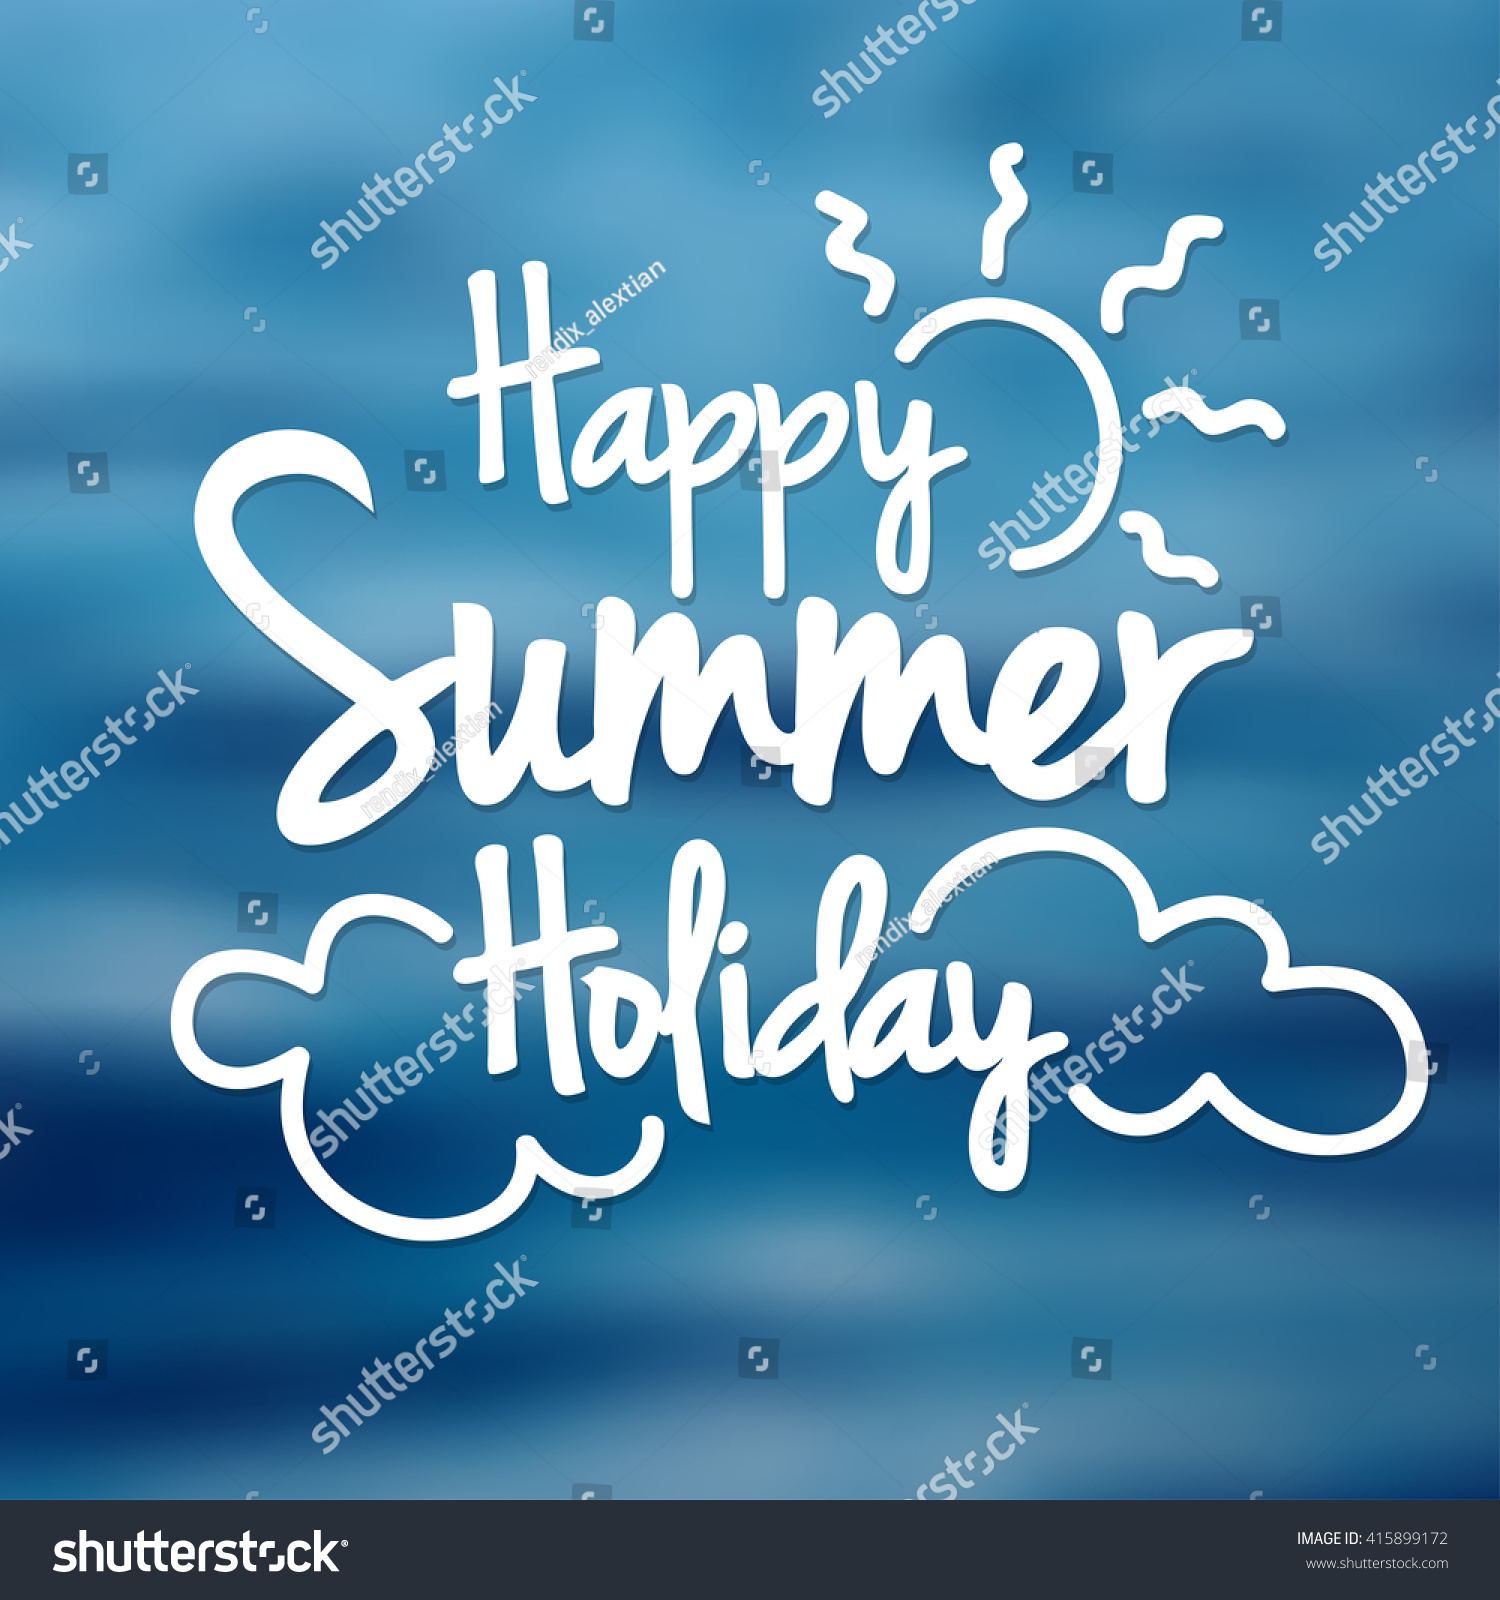 Happy Summer Holidays Pictures Christmas